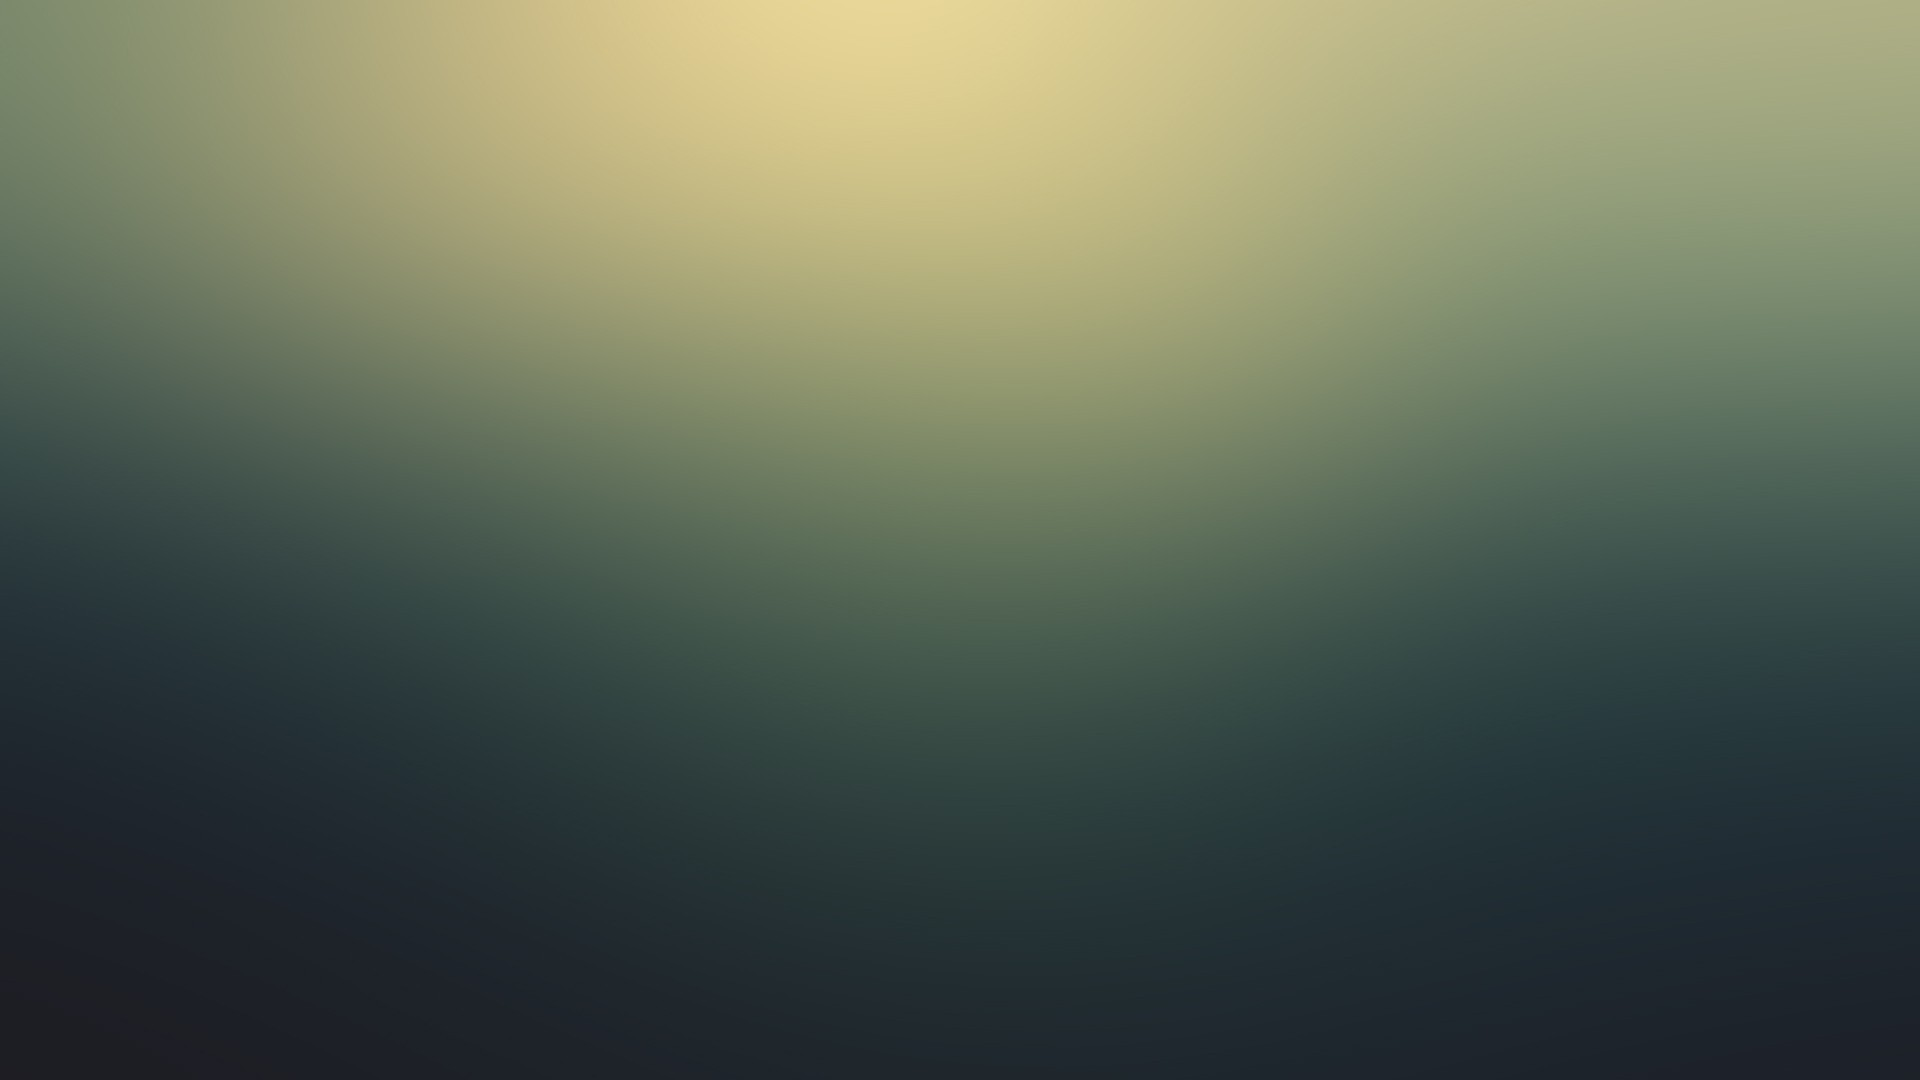 HD Blur Wallpapers Group (86+)